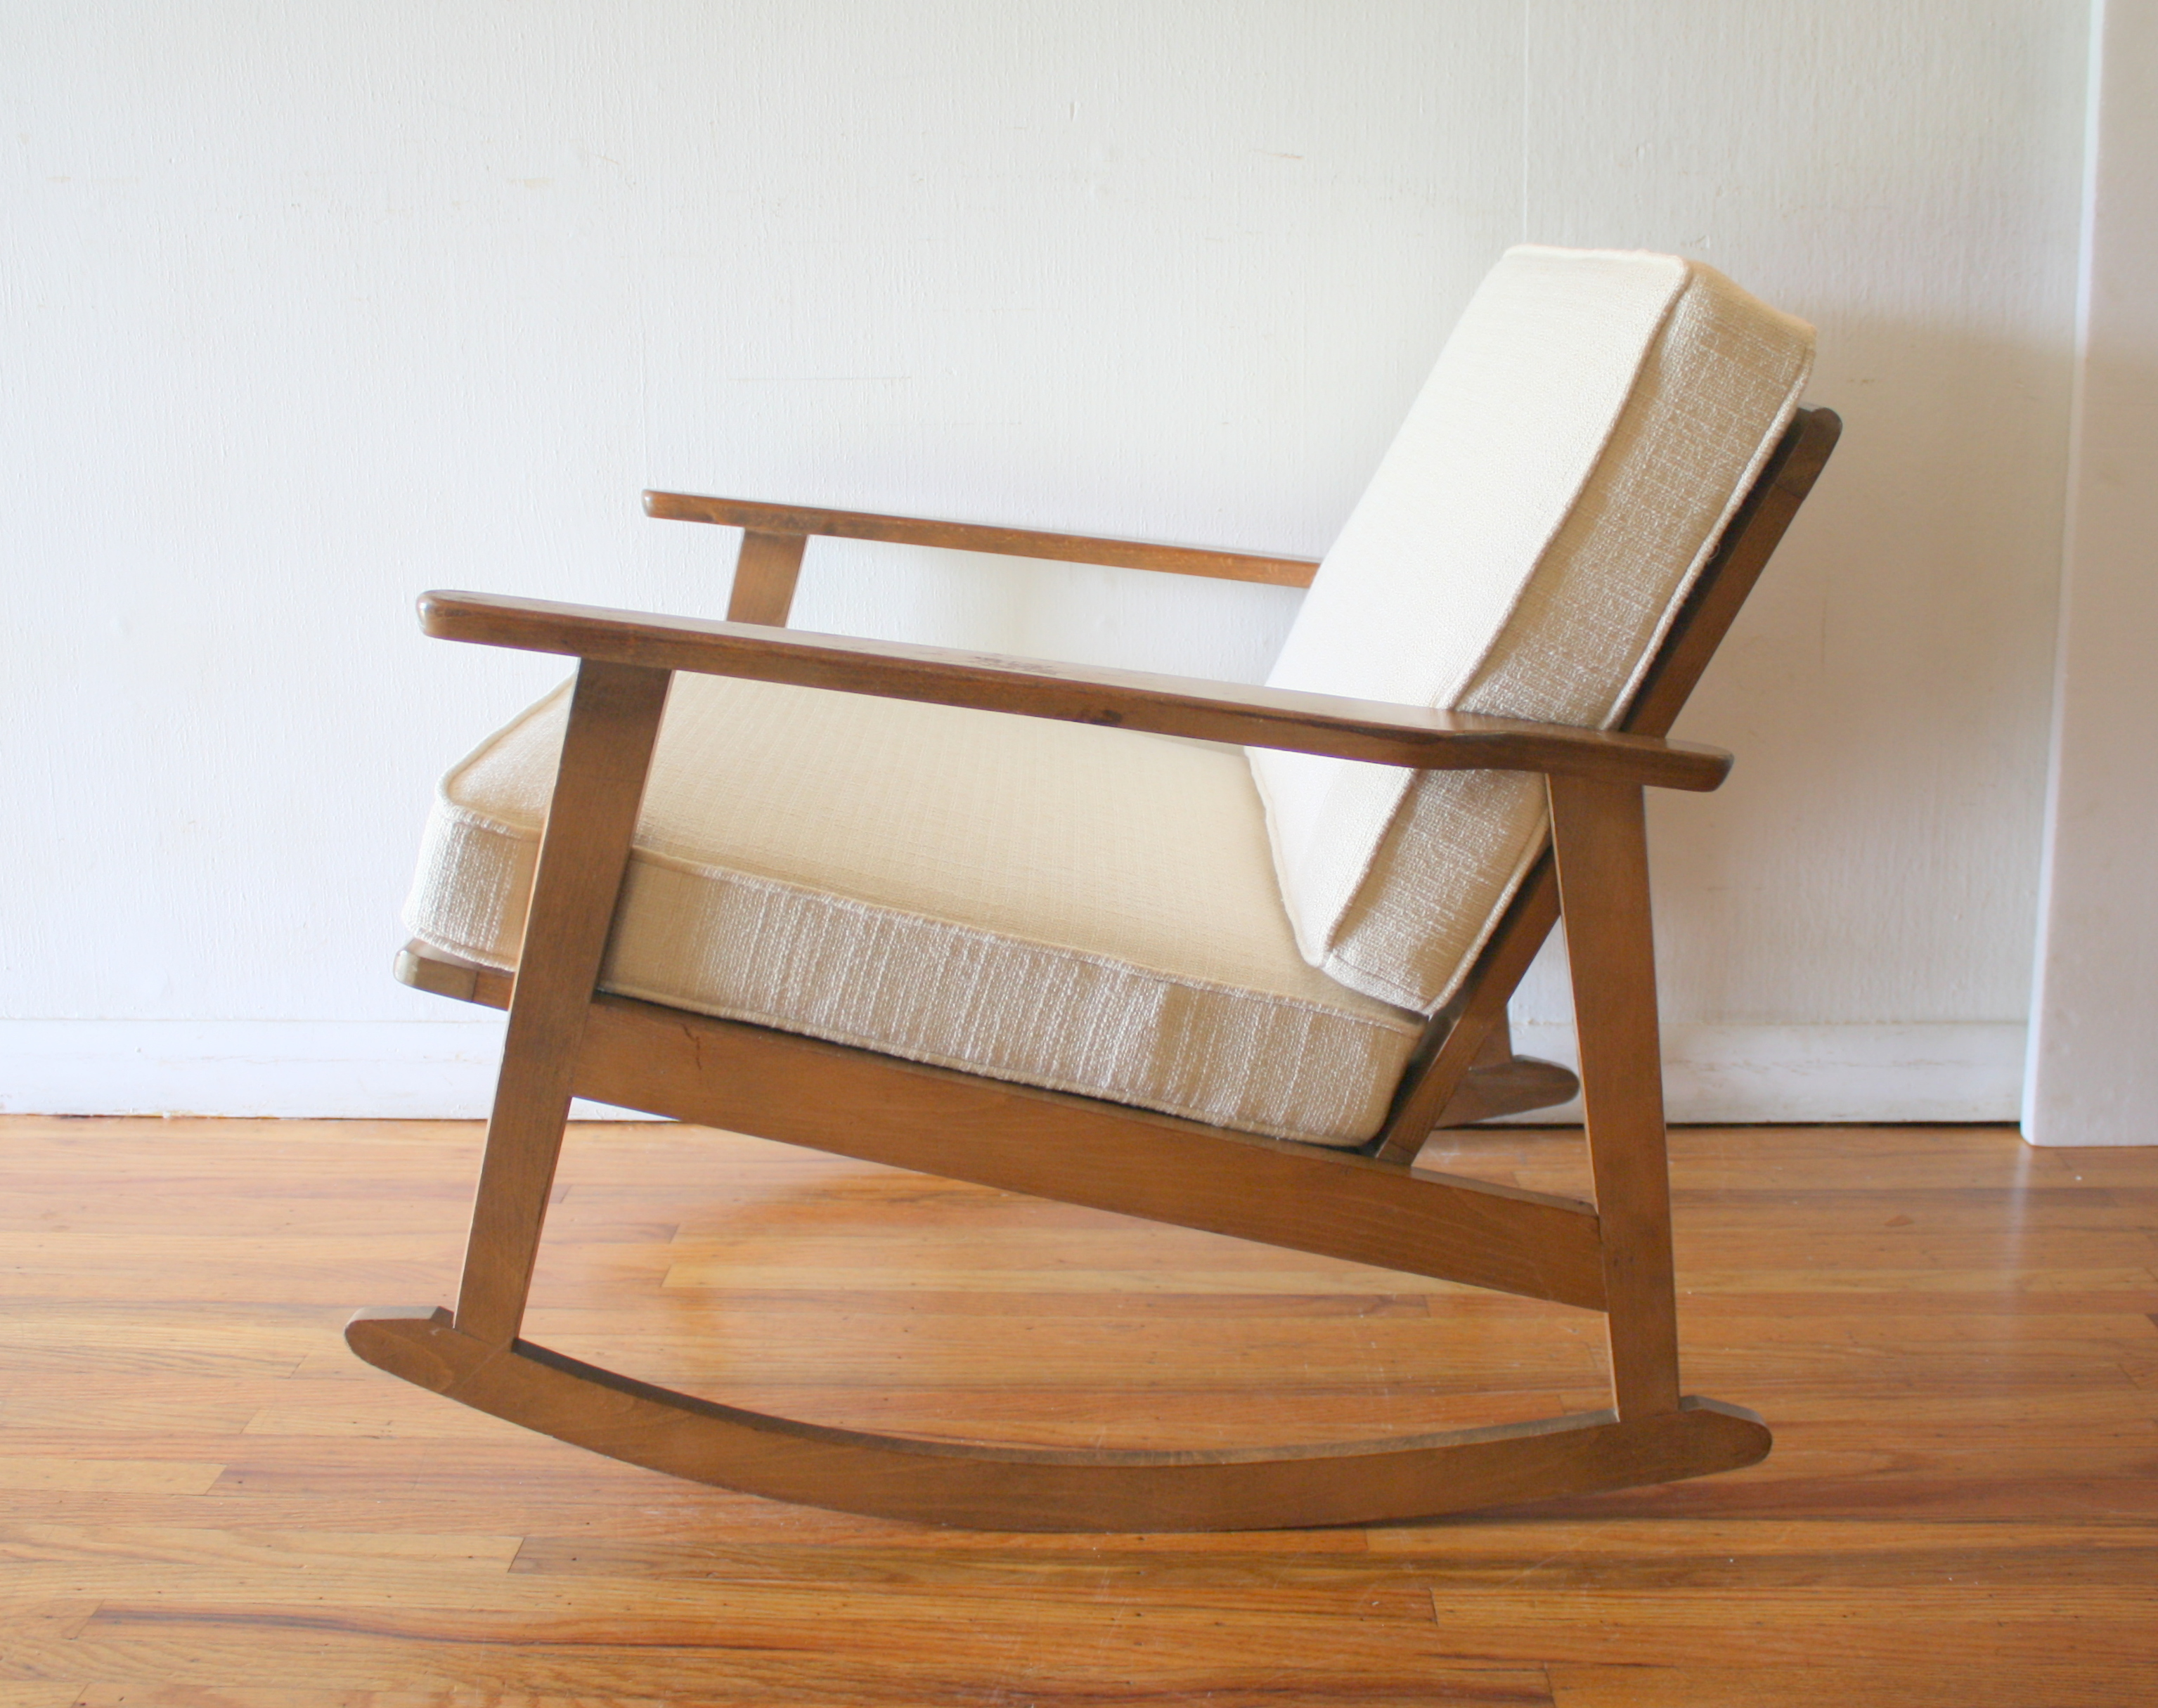 Astonishing Mid Century Modern Rocker Chair Picked Vintage Caraccident5 Cool Chair Designs And Ideas Caraccident5Info